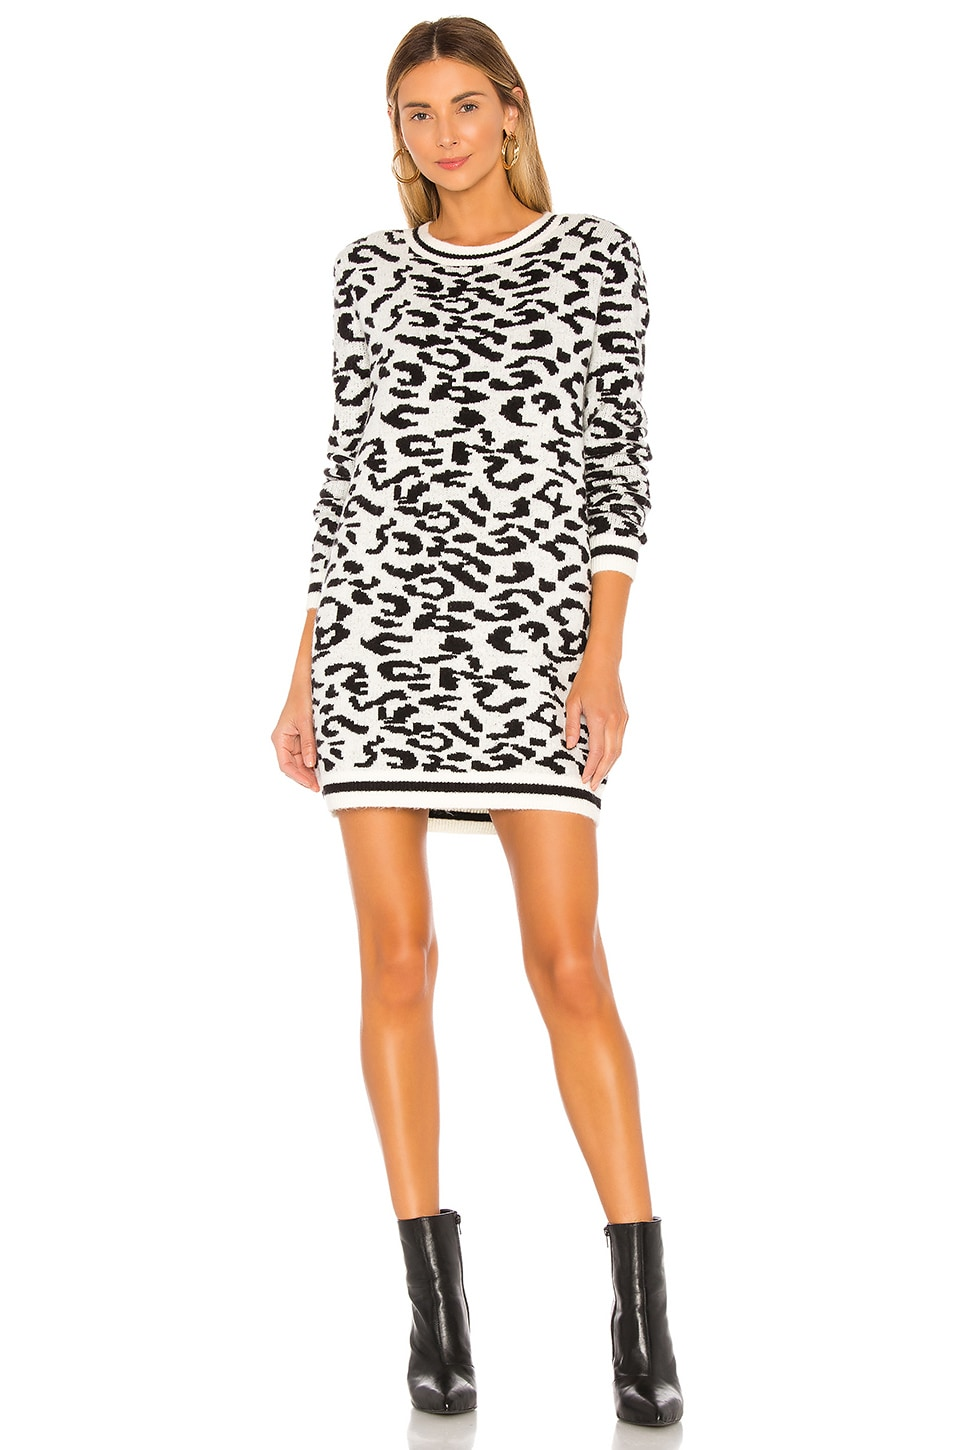 Lovers + Friends Closing In Sweater Dress in Snow Leopard